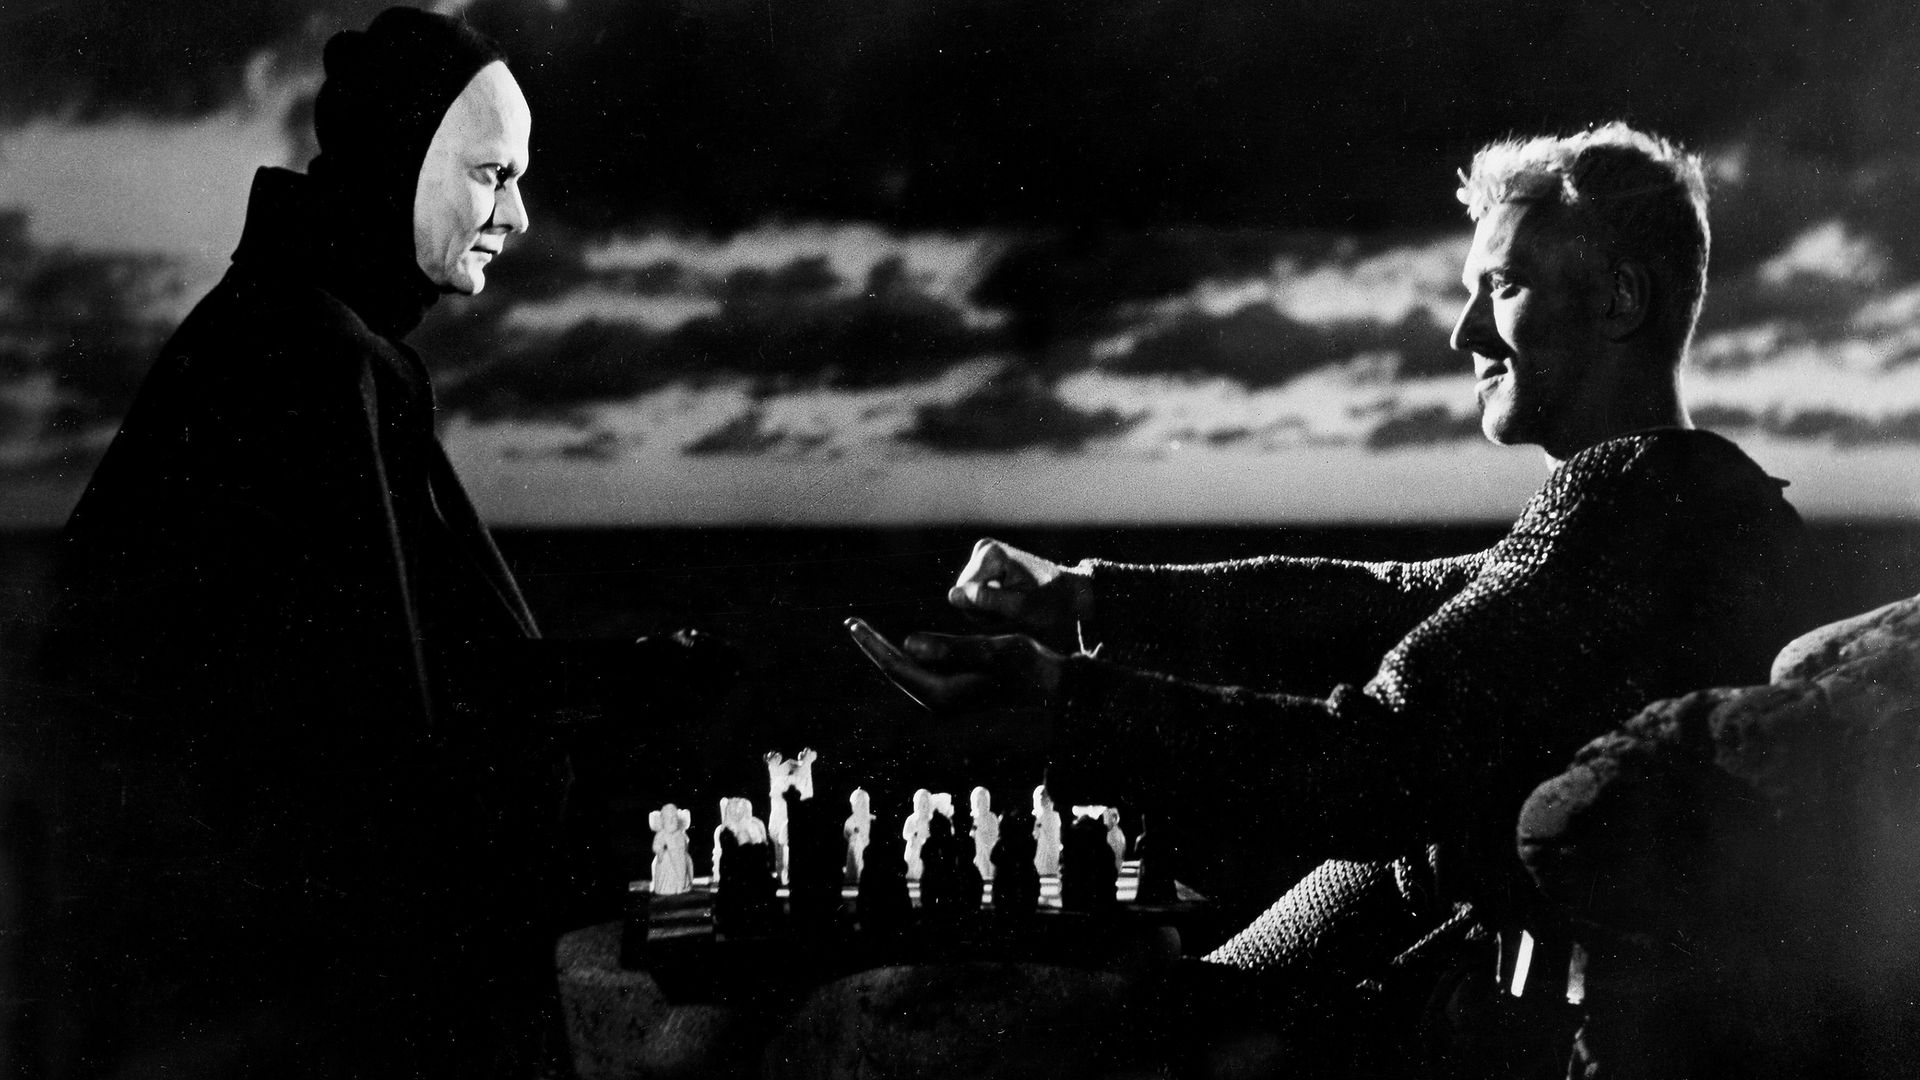 Max von Sydow and Bengt Ekerot The Seventh Seal - Credit: ullstein bild via Getty Images